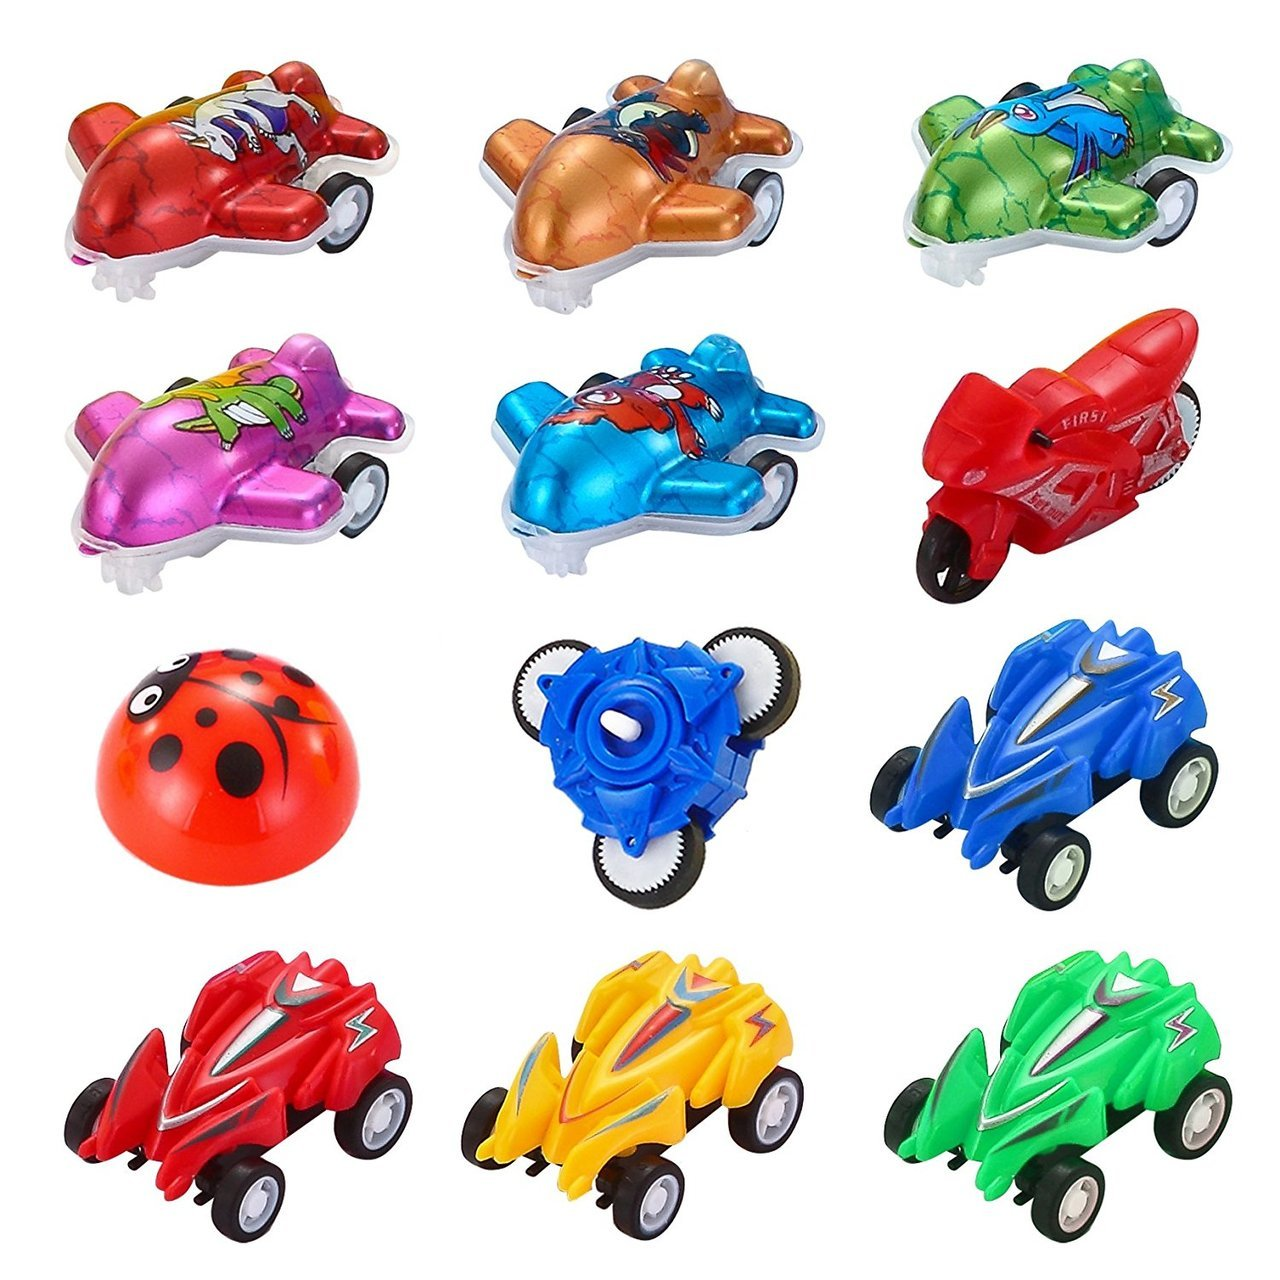 Easter Eggs Pre-Filled with Toy Vehicles, 24-Pack